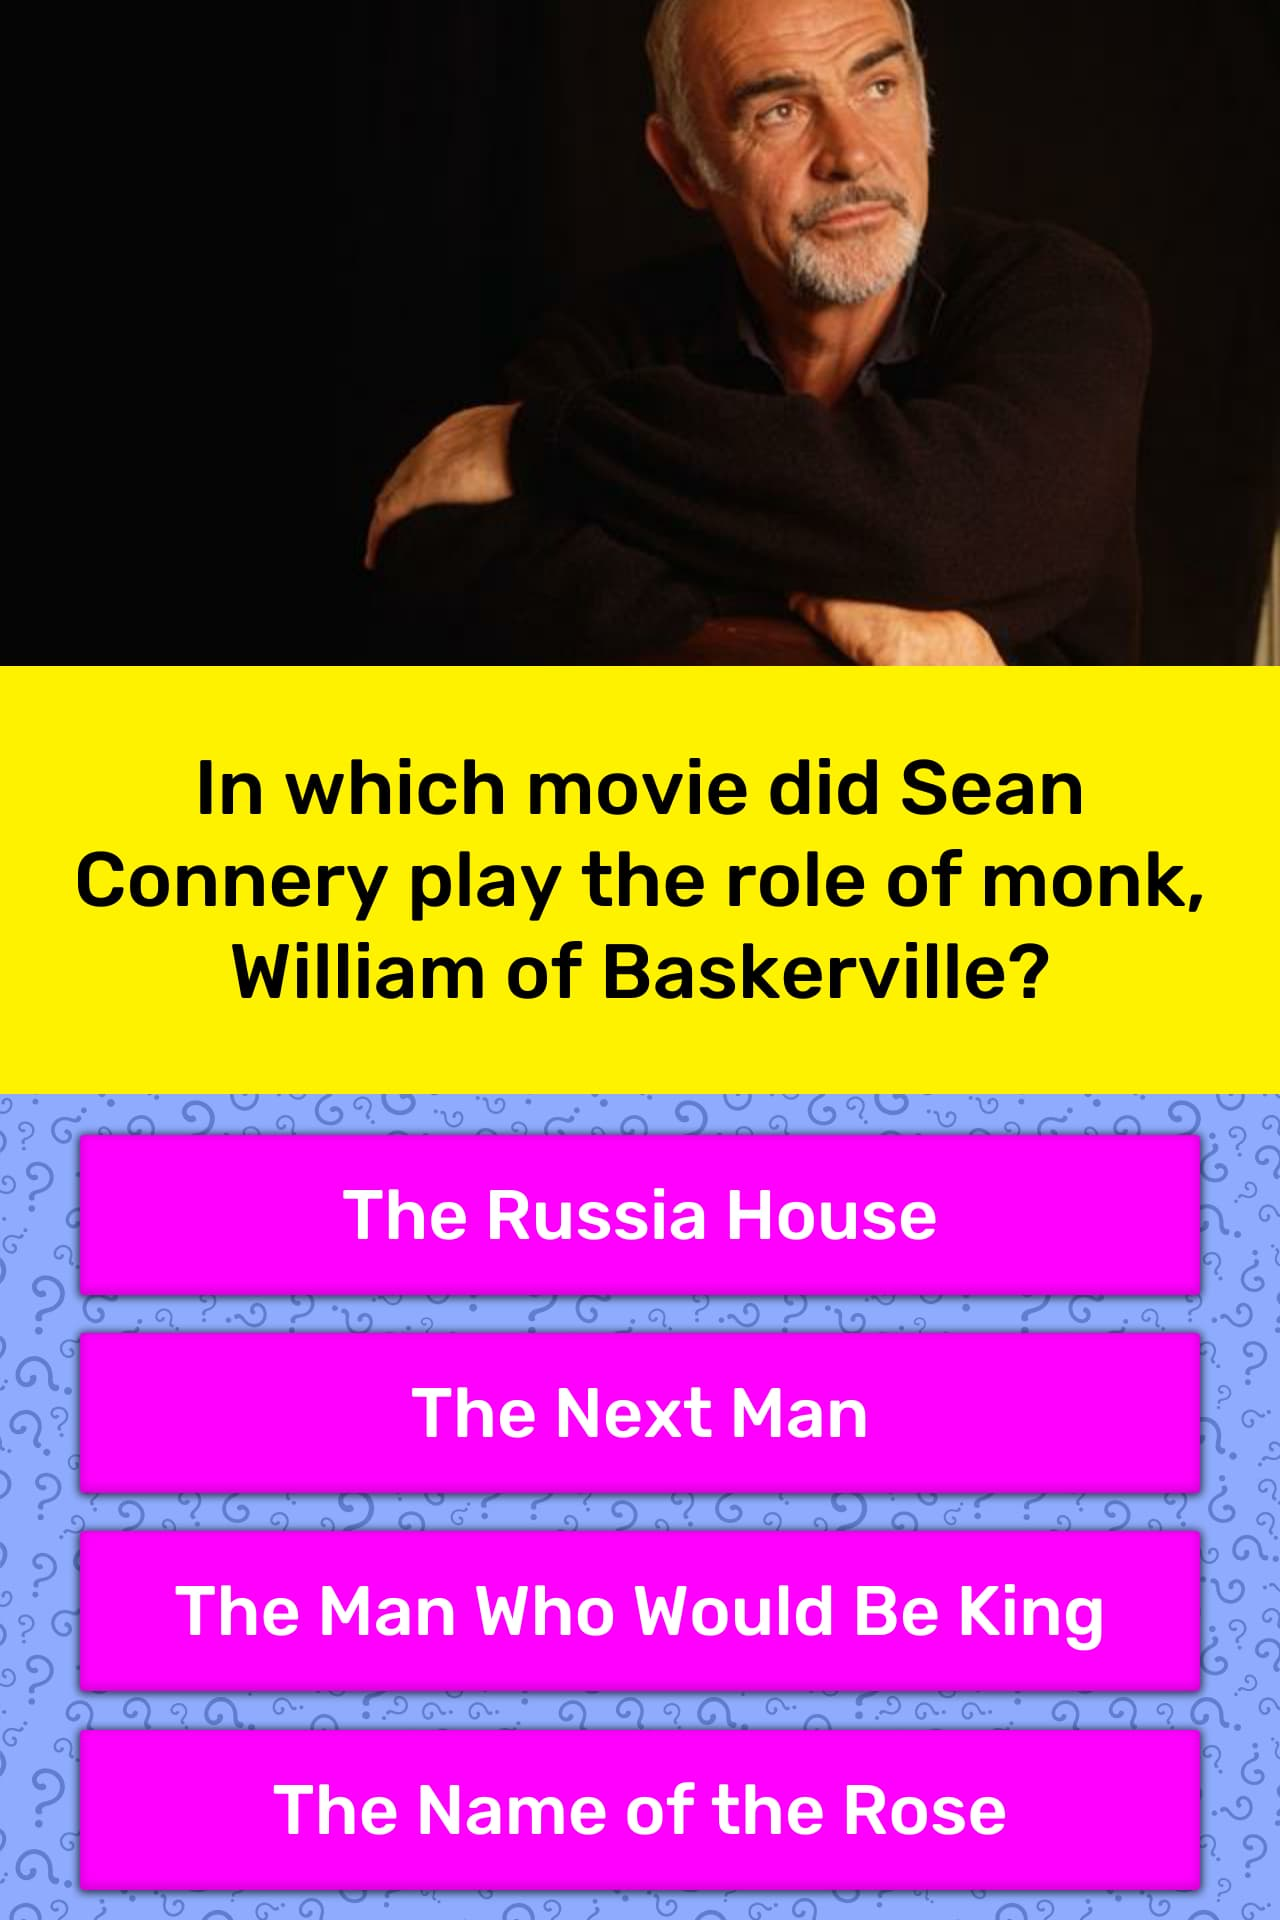 In which movie did Sean Connery play    | Trivia Answers